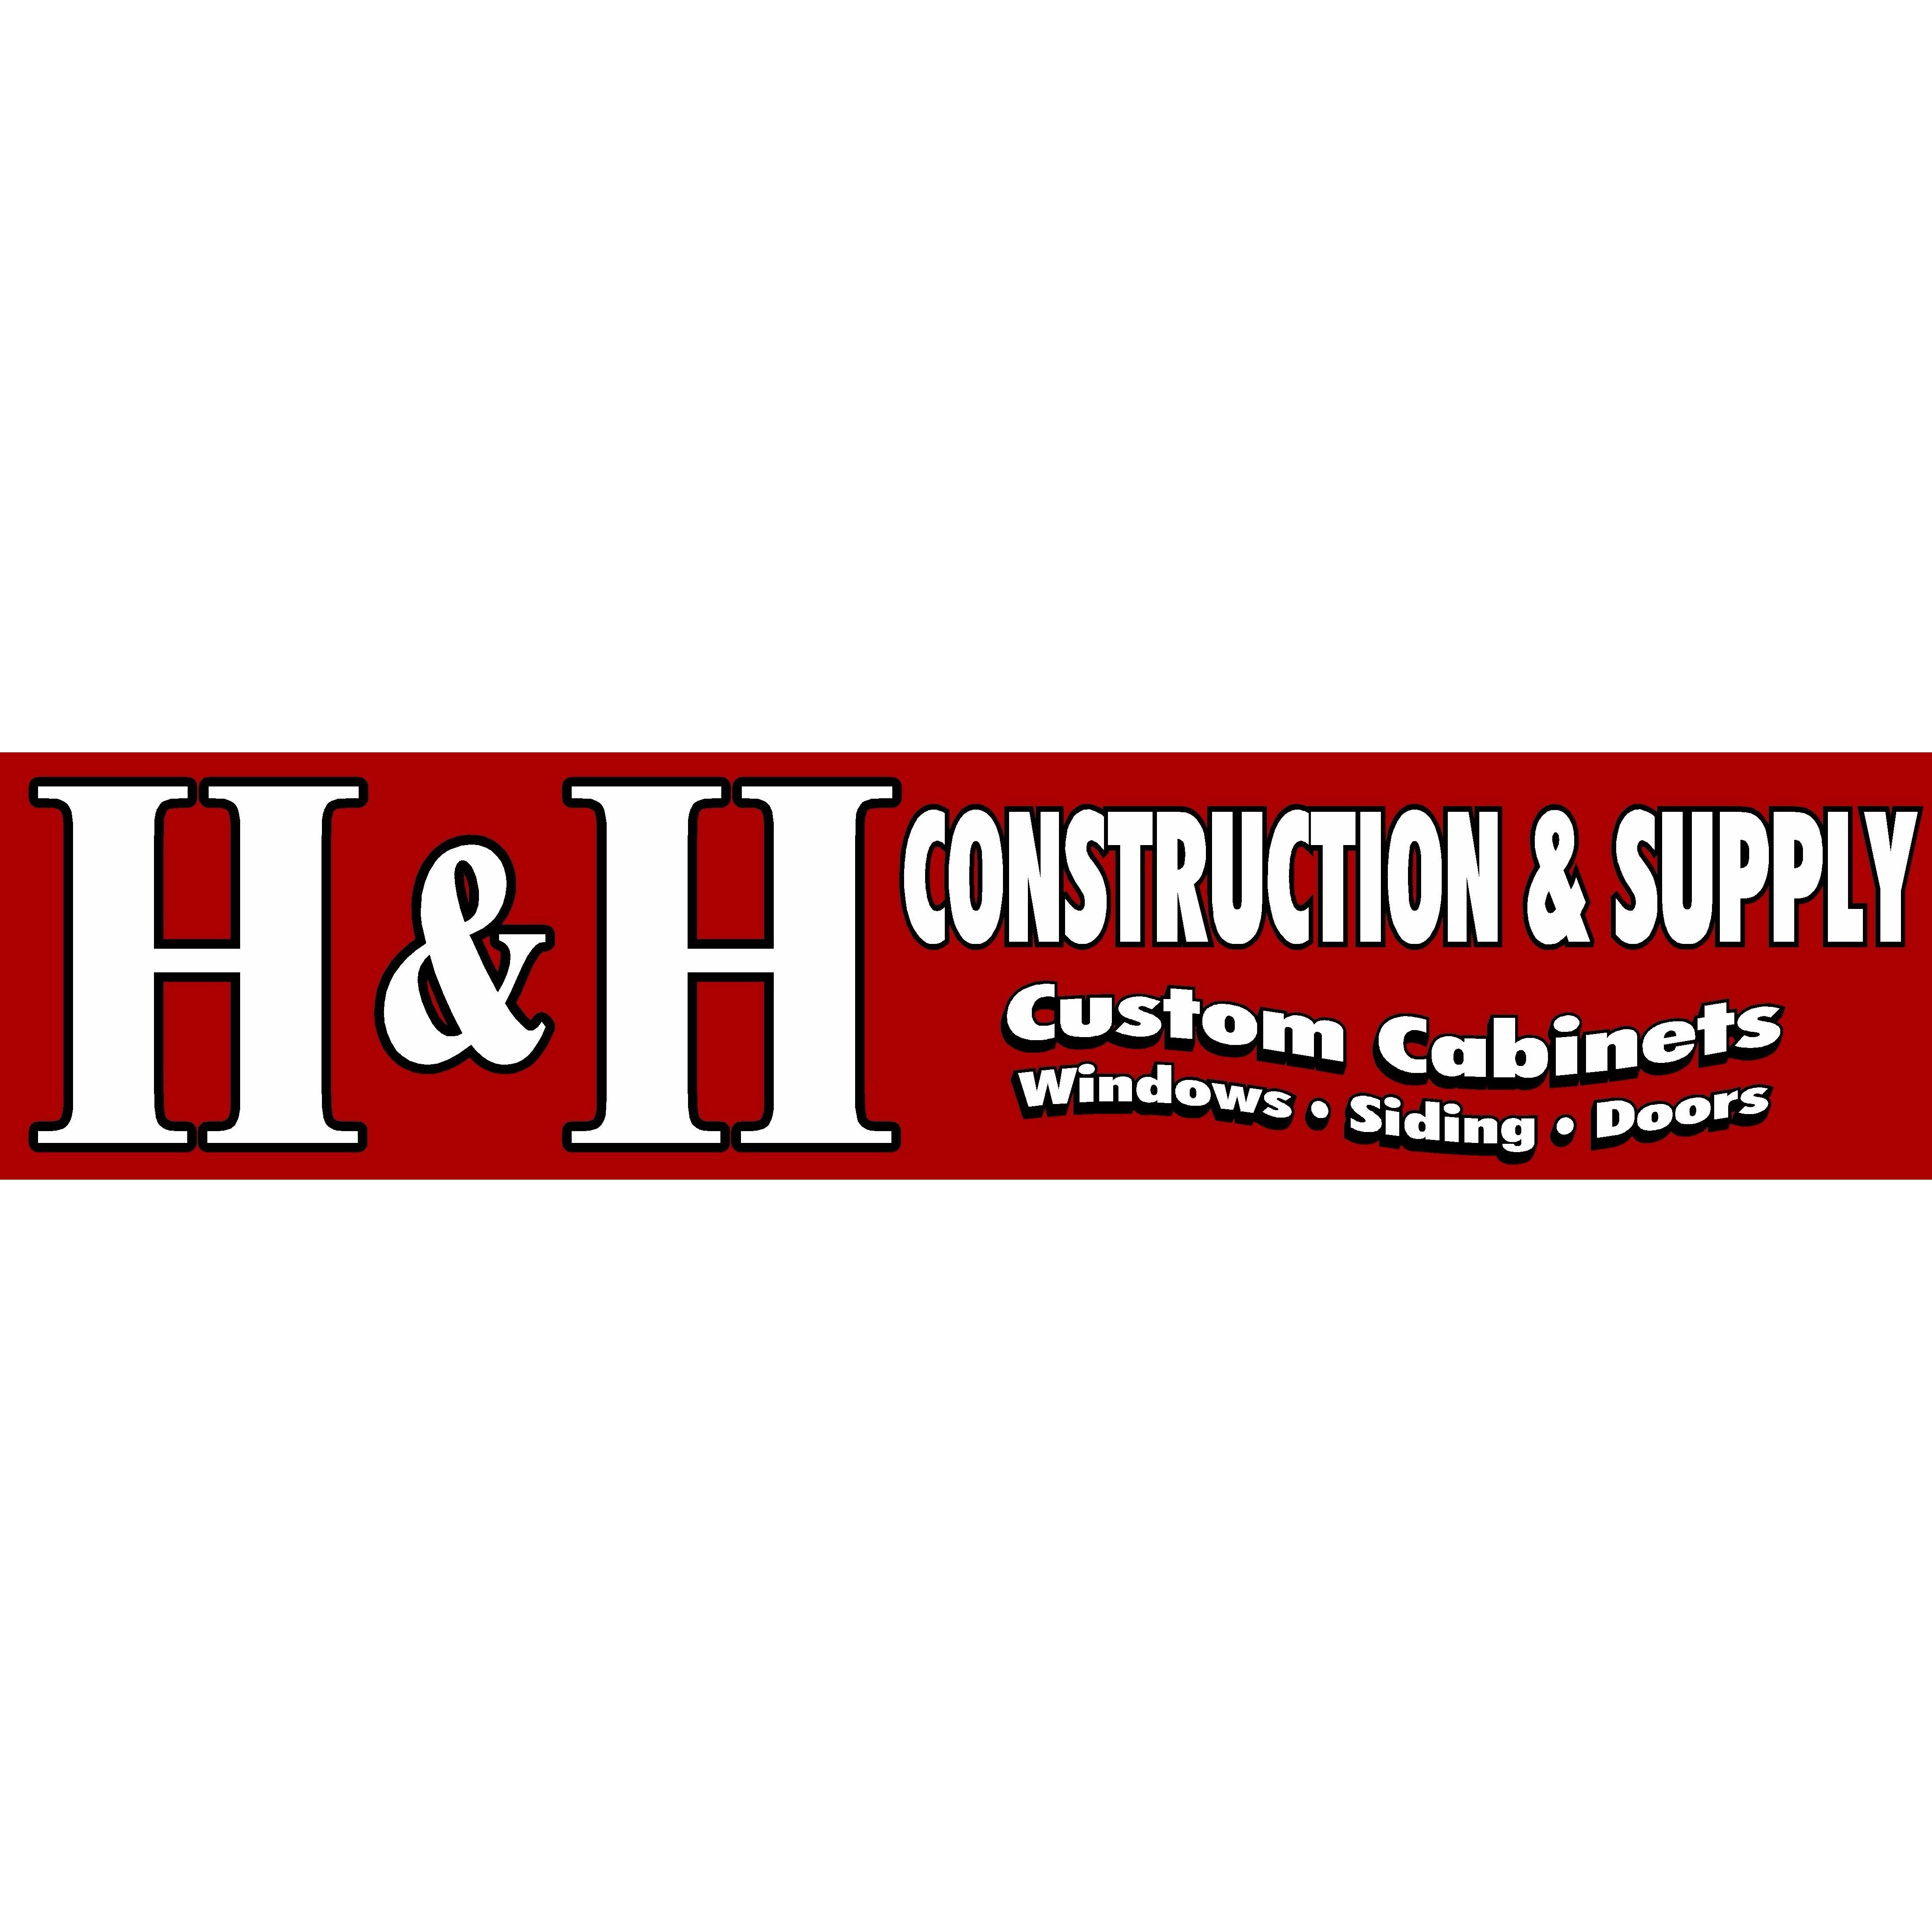 H & H Construction and Supply